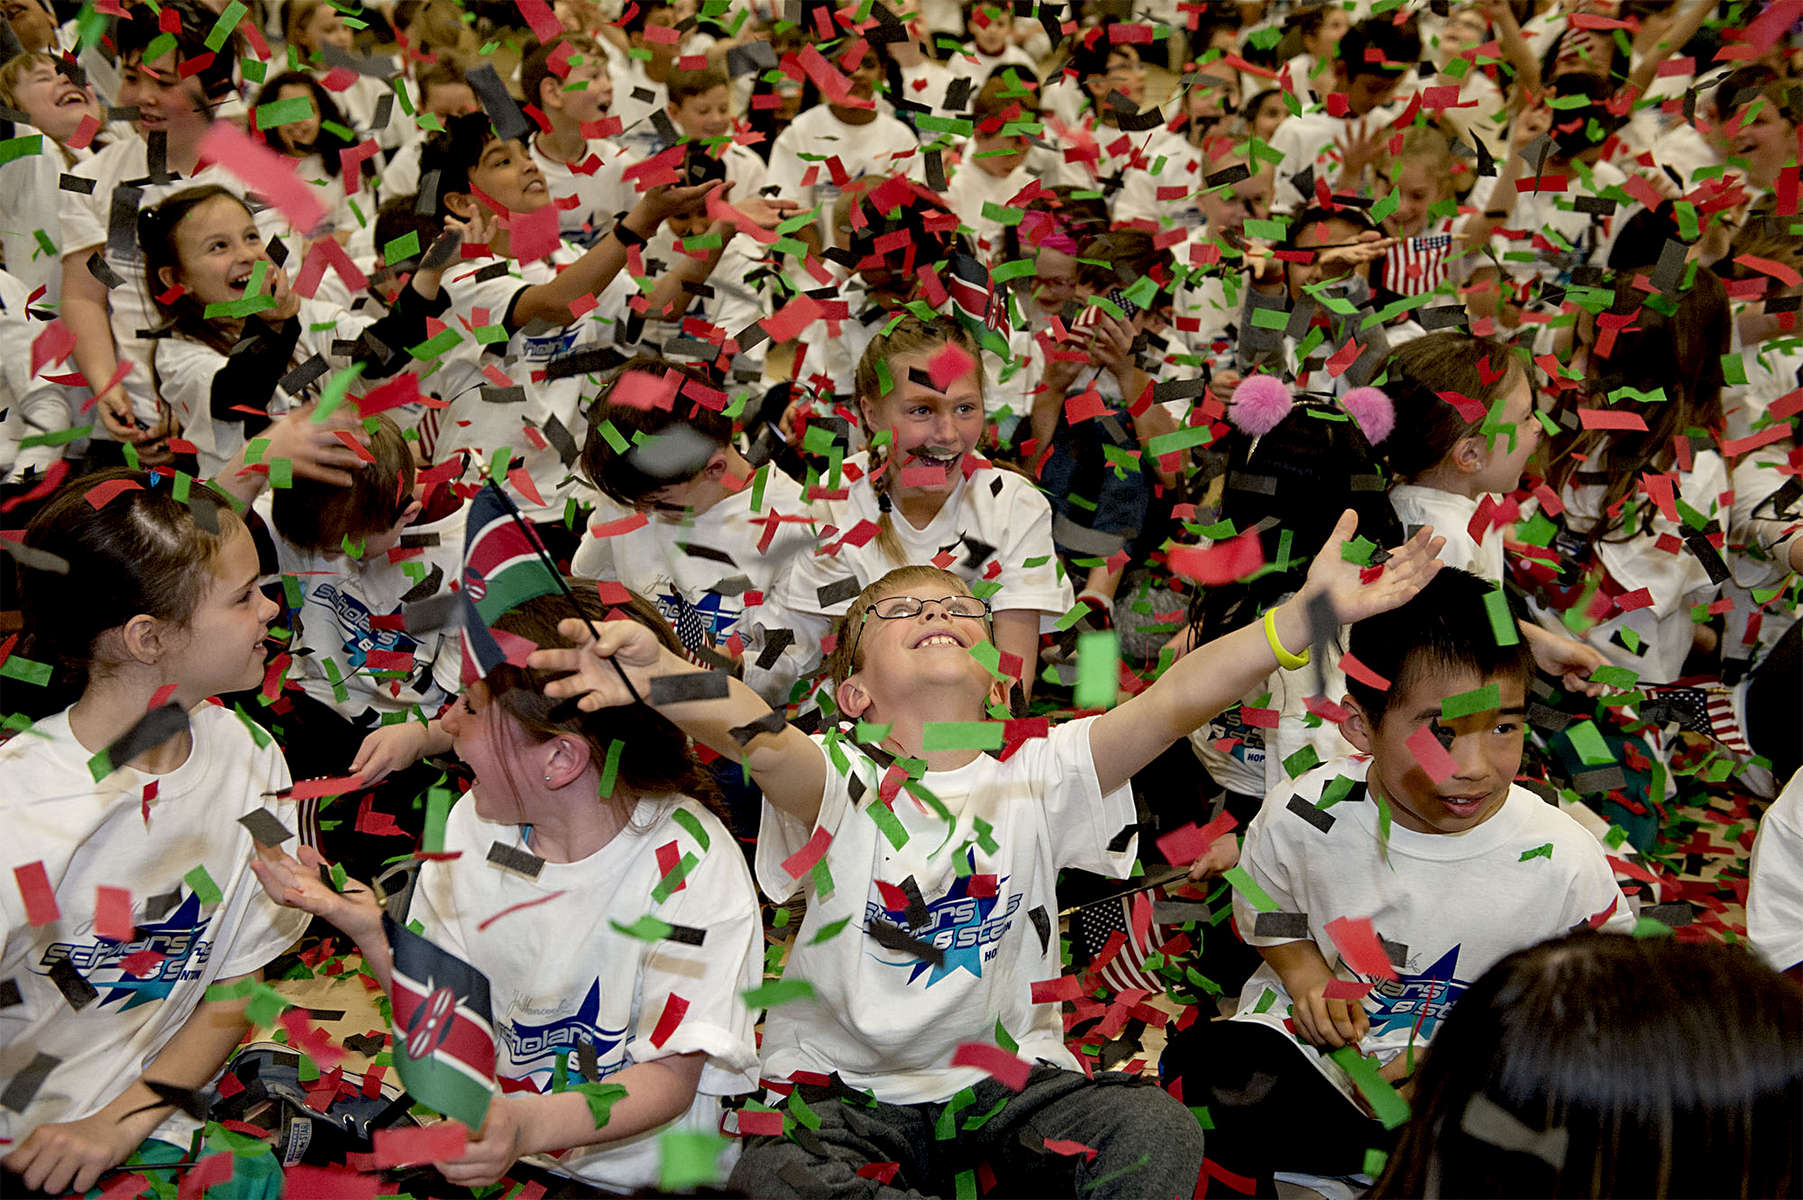 4/11/19-- HOPKINTON-- At the conclusion of the 27th annual John Hancock Scholars and Stars pre-Boston Marathon pep rally at the Elmwood Elementary School on Thursday, third grader Danny Johnson, center, and classmates enjoy a shower of confetti.  [Daily News and Wicked Local Staff Photo/Art Illman]